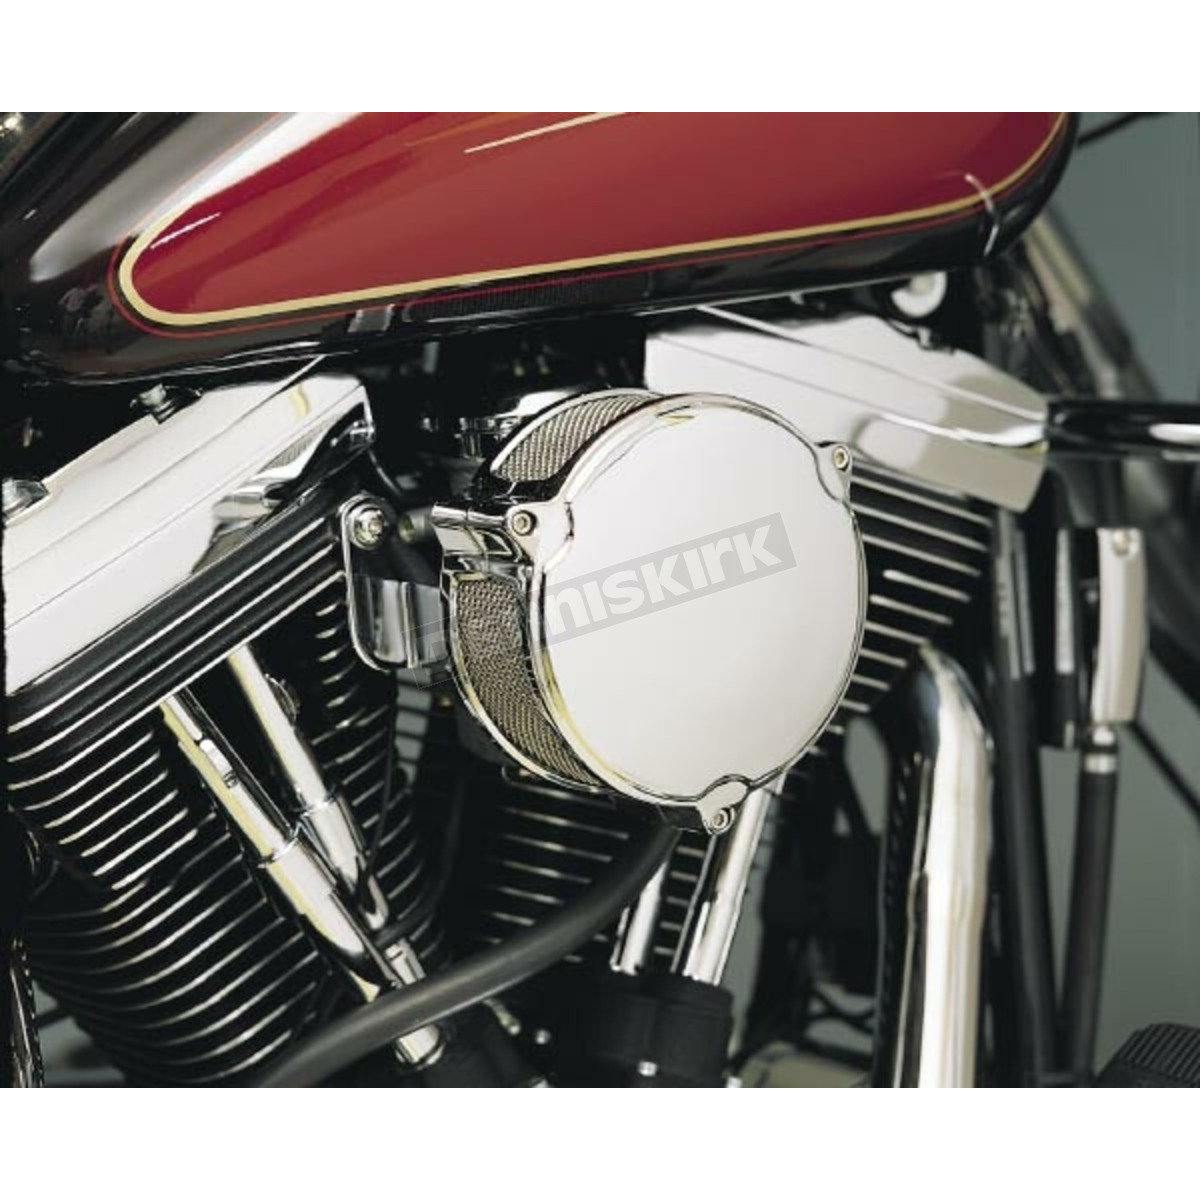 Army Motorcycle Custom Air Cleaners : Drag specialties high performance dragtron ii air cleaner